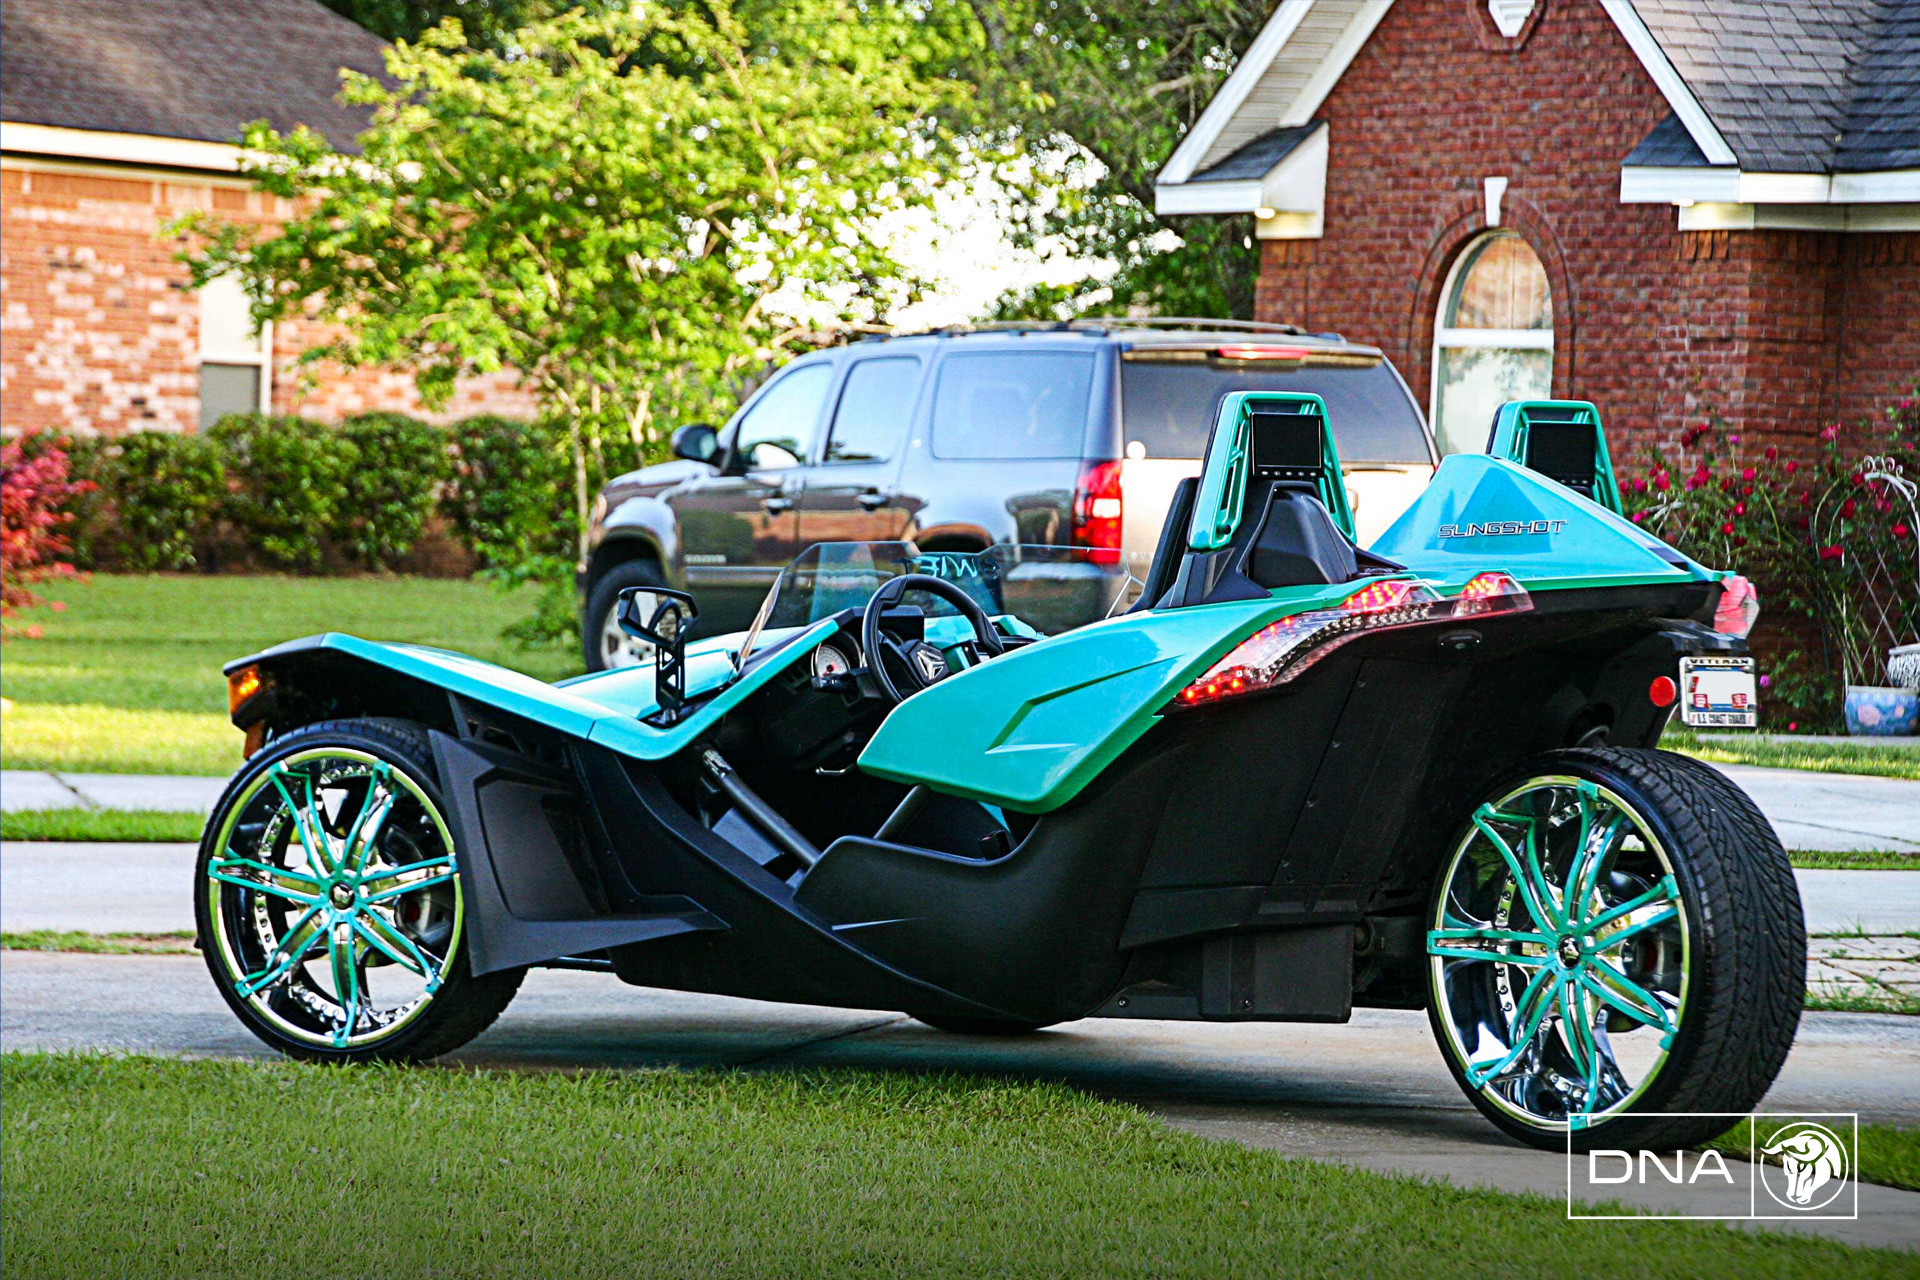 Diablo Wheels - DNA on a Polaris Slingshot